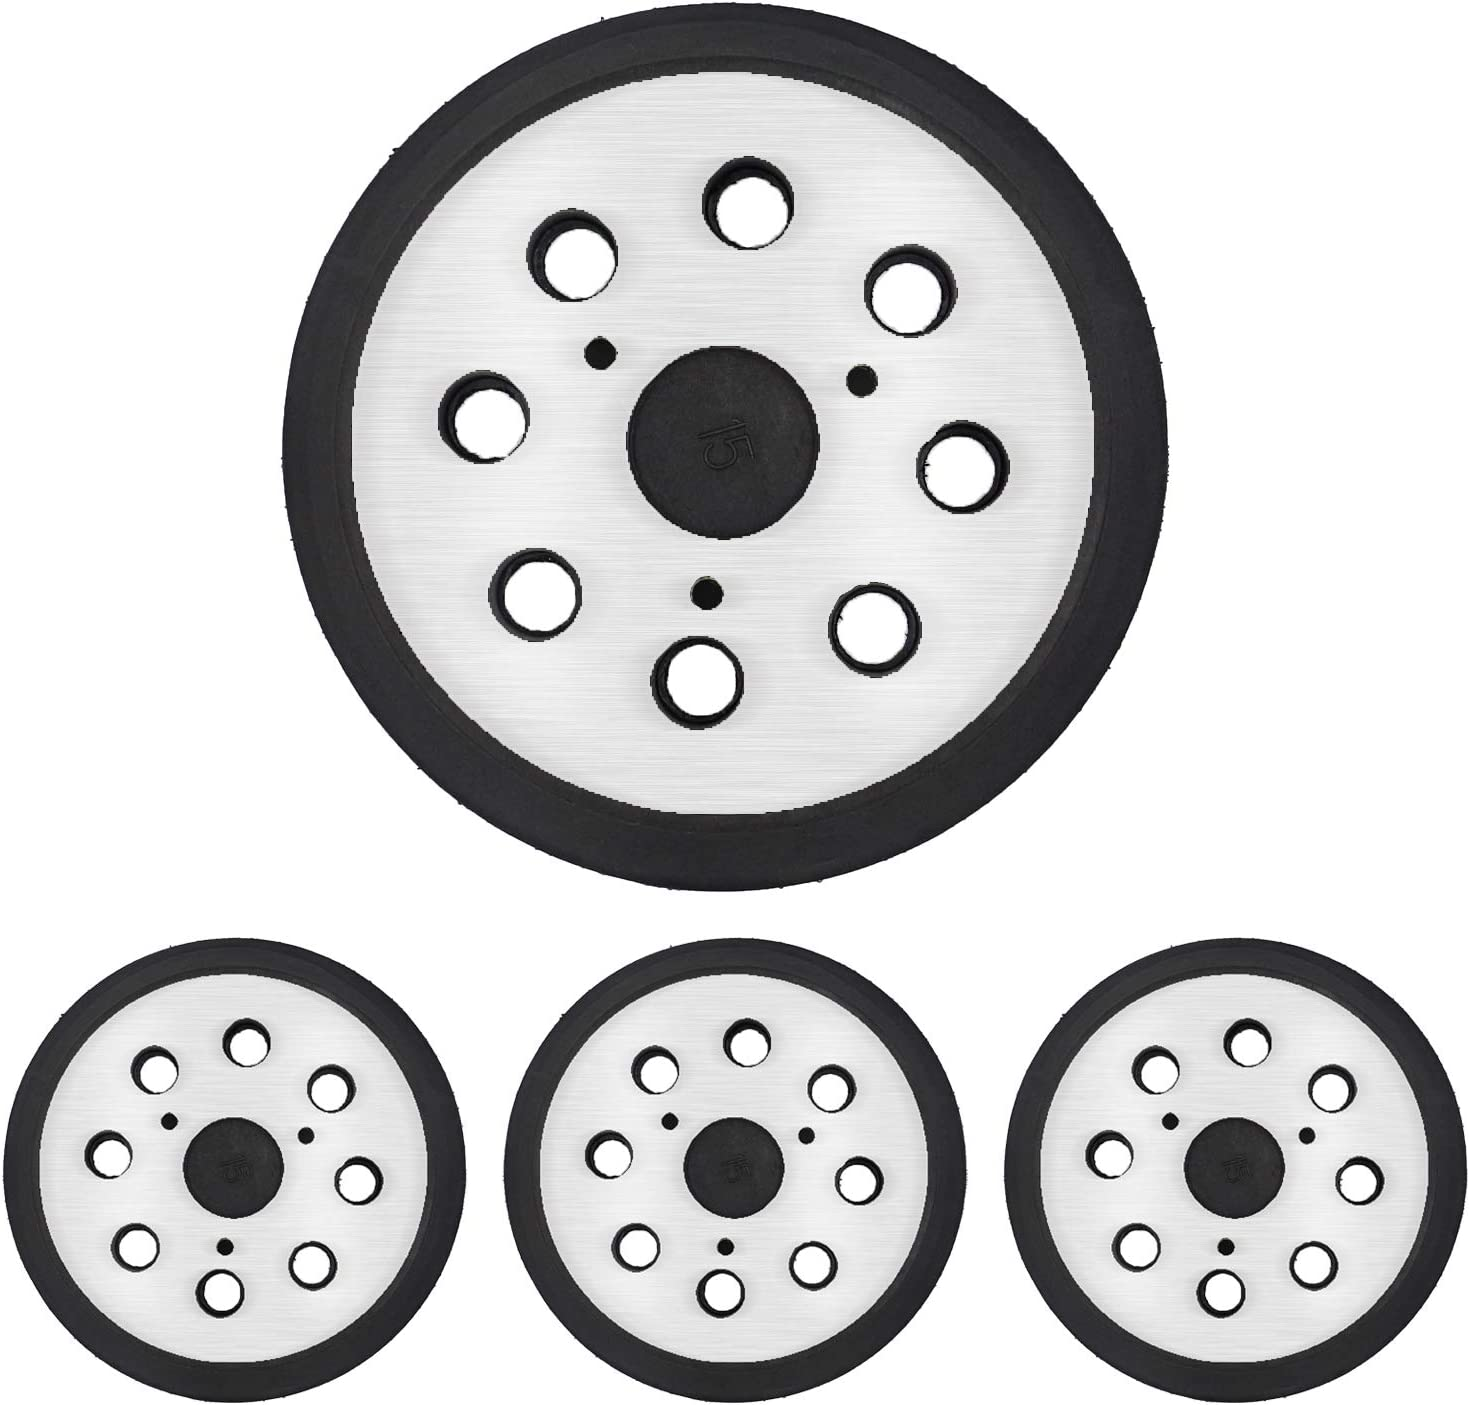 "Tanzfrosch 4 Pack 5 inch 8 Hole Replacement Sander Pads 5"" Hook and Loop Orbital Sanding Backing Plates for DeWalt 151281-08 RSP26 Compatible with DeWalt, Makita, Porter Cable, Black & Decker Tools"